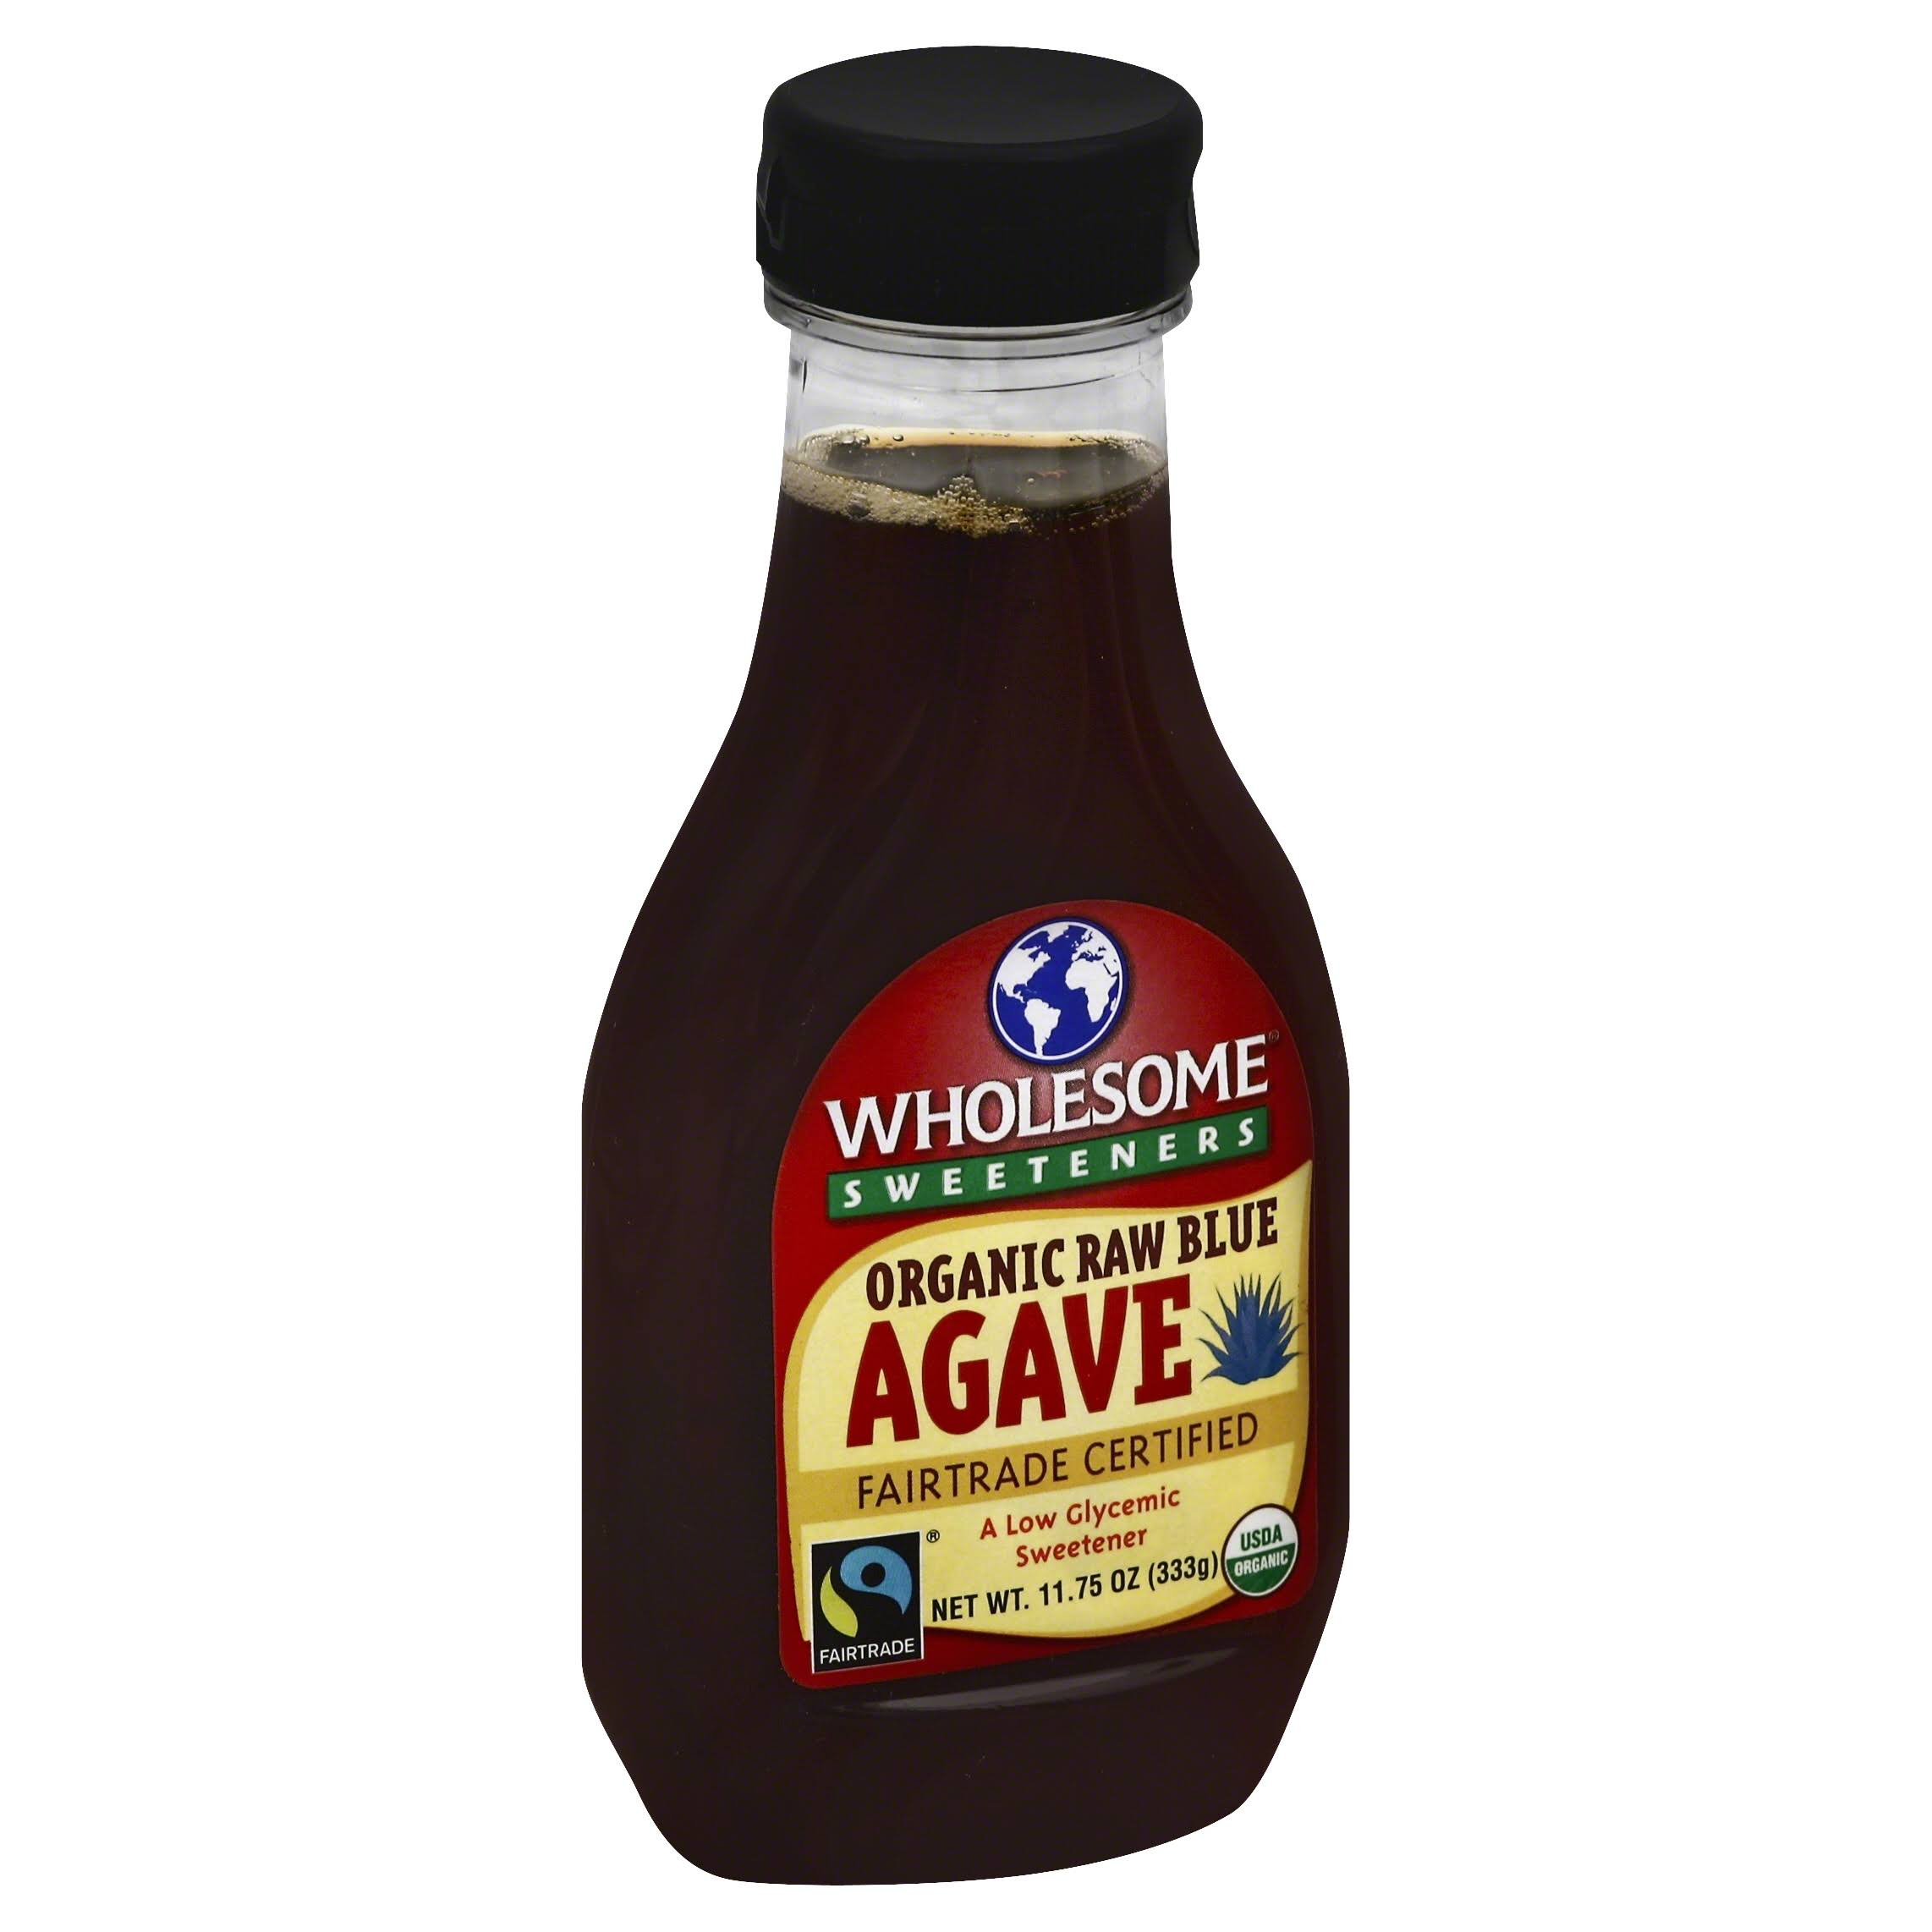 Wholesome Sweeteners Organic Raw Blue Agave - 11.75 fl oz bottle